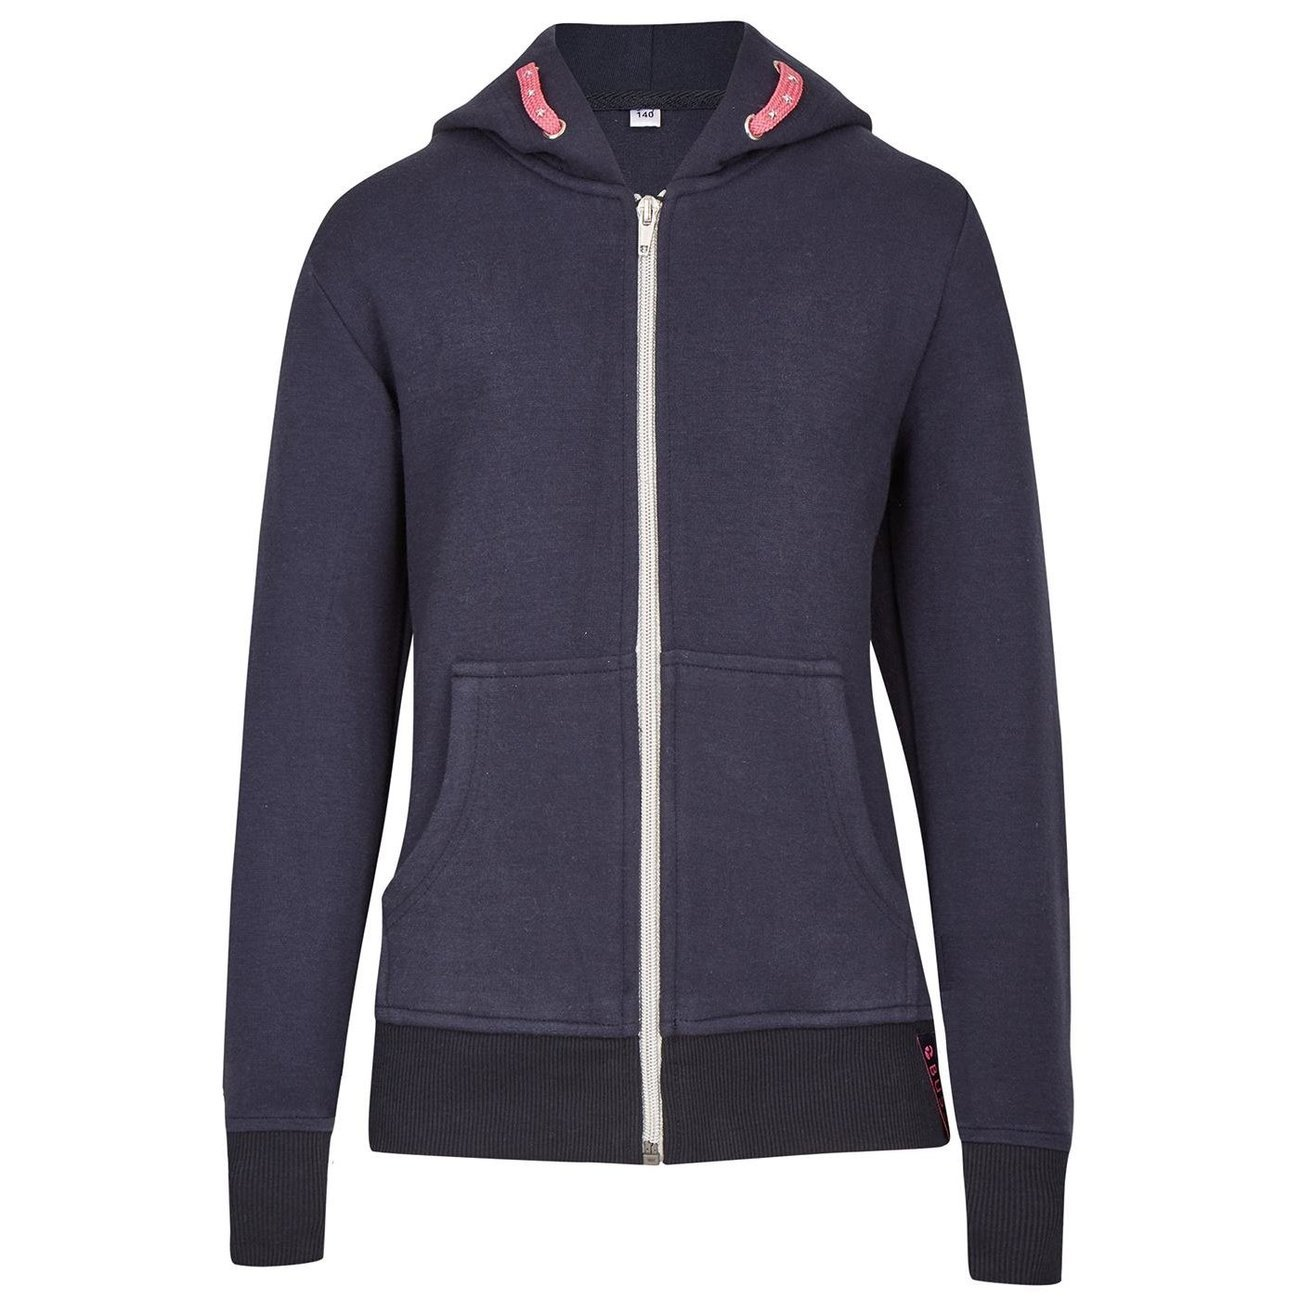 BUSSE Sweat Shirt Jacke Hoodie Young Star